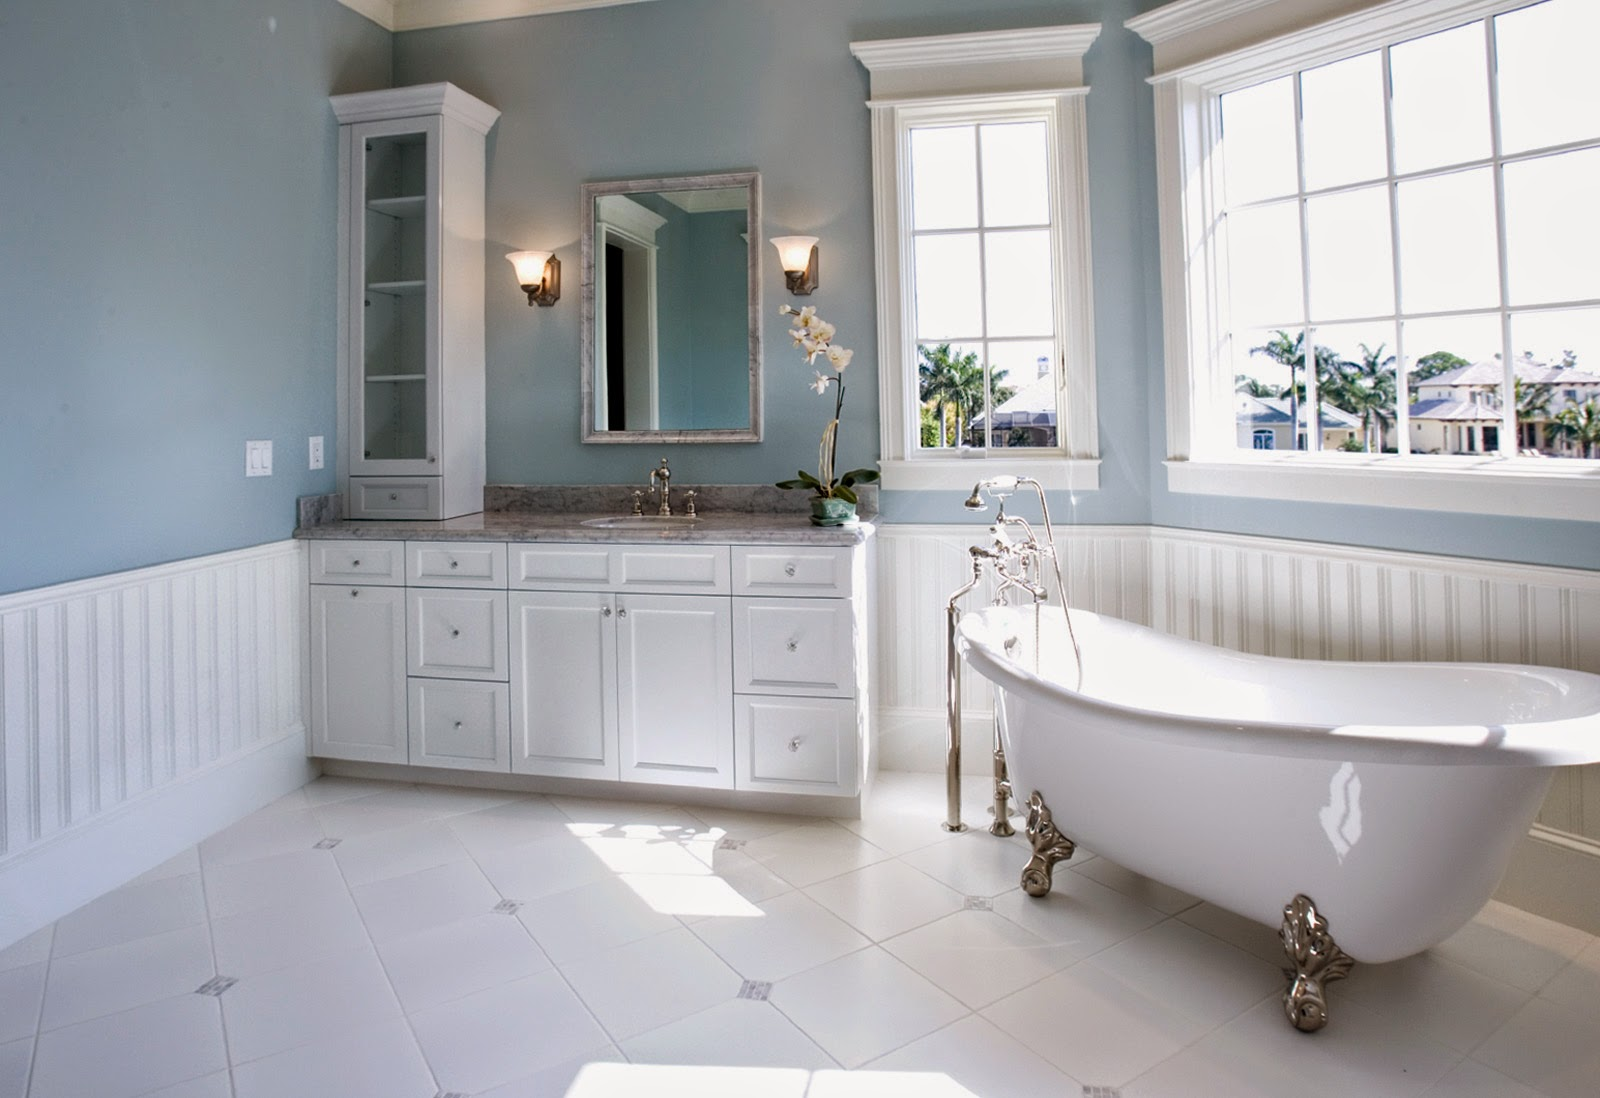 Top 10 beautiful bathroom design 2014 home interior blog for Design my bathroom